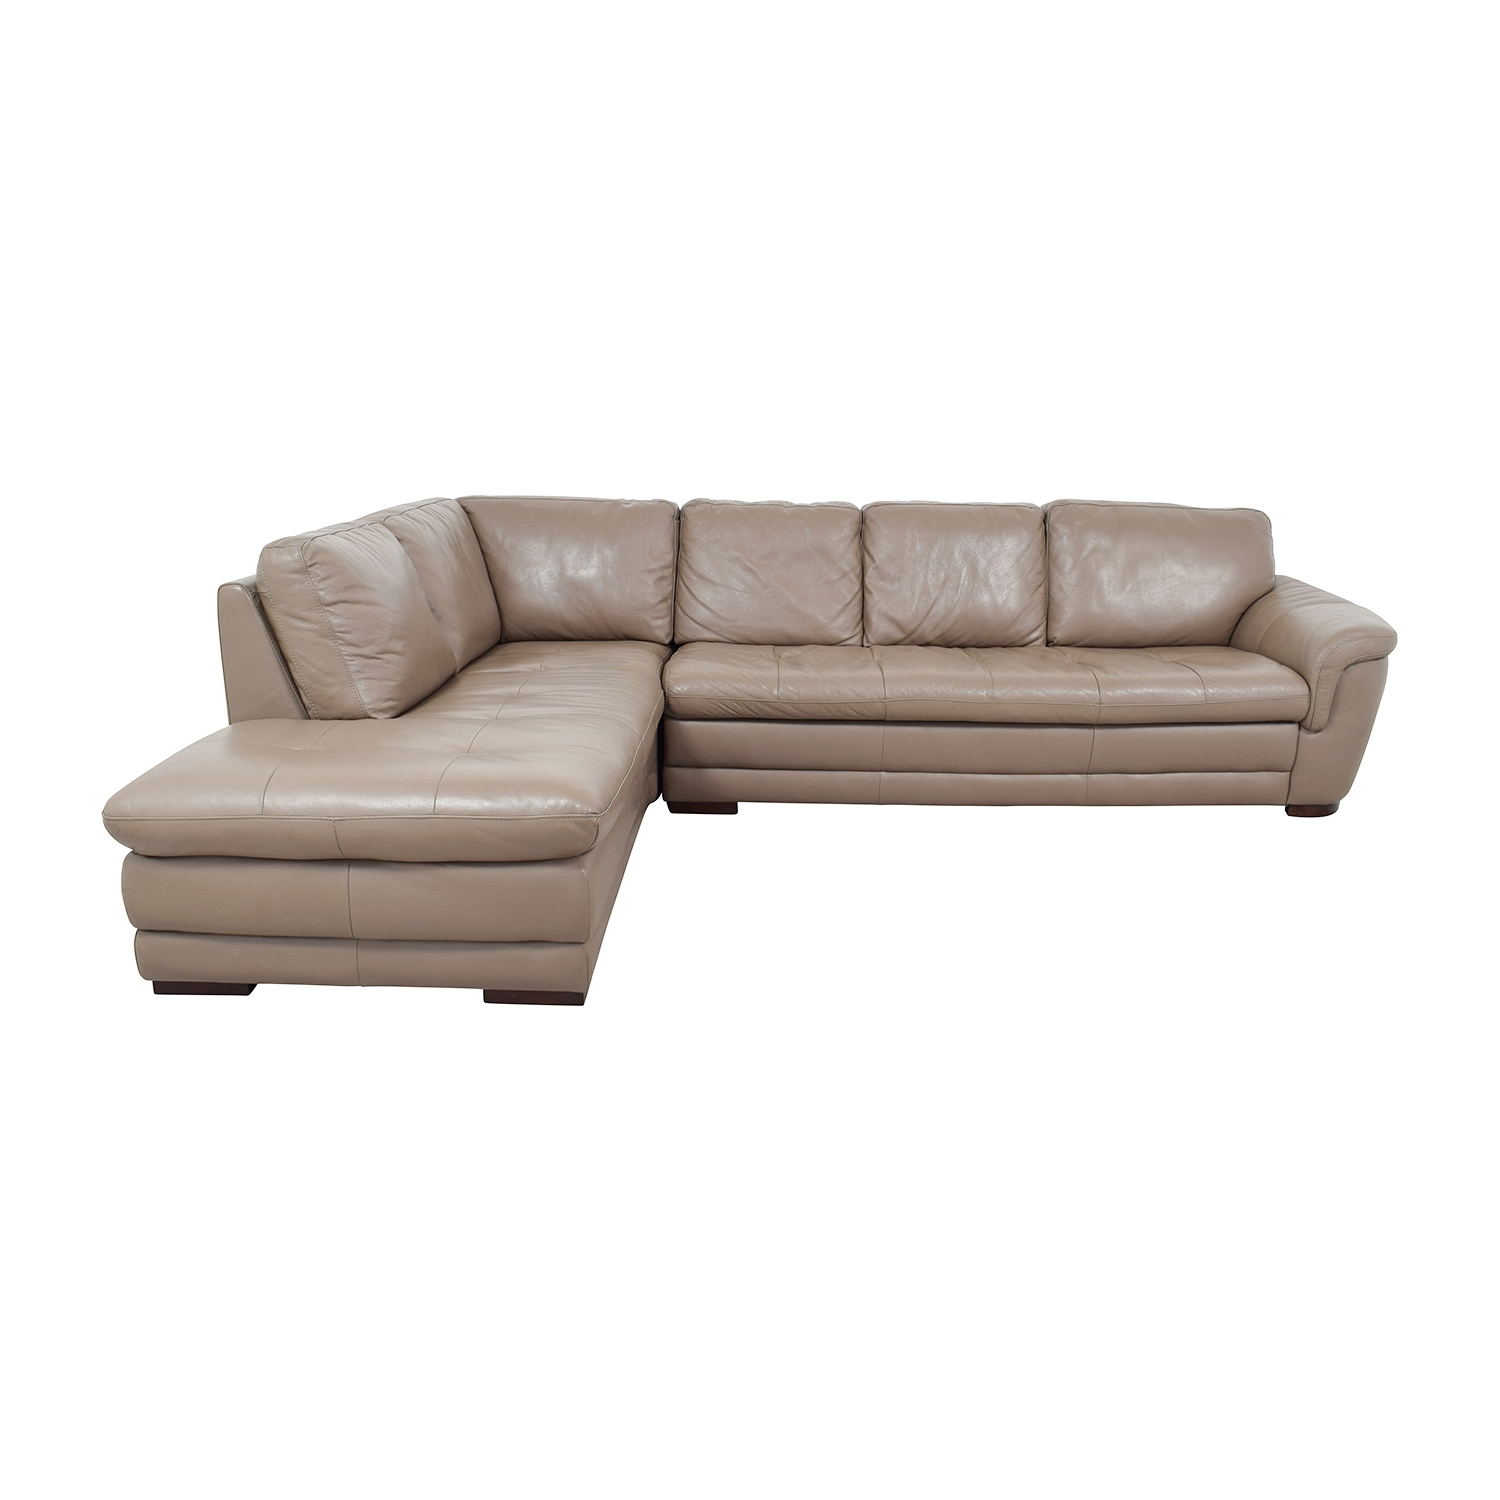 [%74% Off – Raymour And Flanigan Raymour & Flanigan Tan Tufted Within Most Up To Date Sectional Sofas At Raymour And Flanigan|sectional Sofas At Raymour And Flanigan Regarding Most Current 74% Off – Raymour And Flanigan Raymour & Flanigan Tan Tufted|current Sectional Sofas At Raymour And Flanigan Pertaining To 74% Off – Raymour And Flanigan Raymour & Flanigan Tan Tufted|2019 74% Off – Raymour And Flanigan Raymour & Flanigan Tan Tufted Within Sectional Sofas At Raymour And Flanigan%] (View 3 of 20)